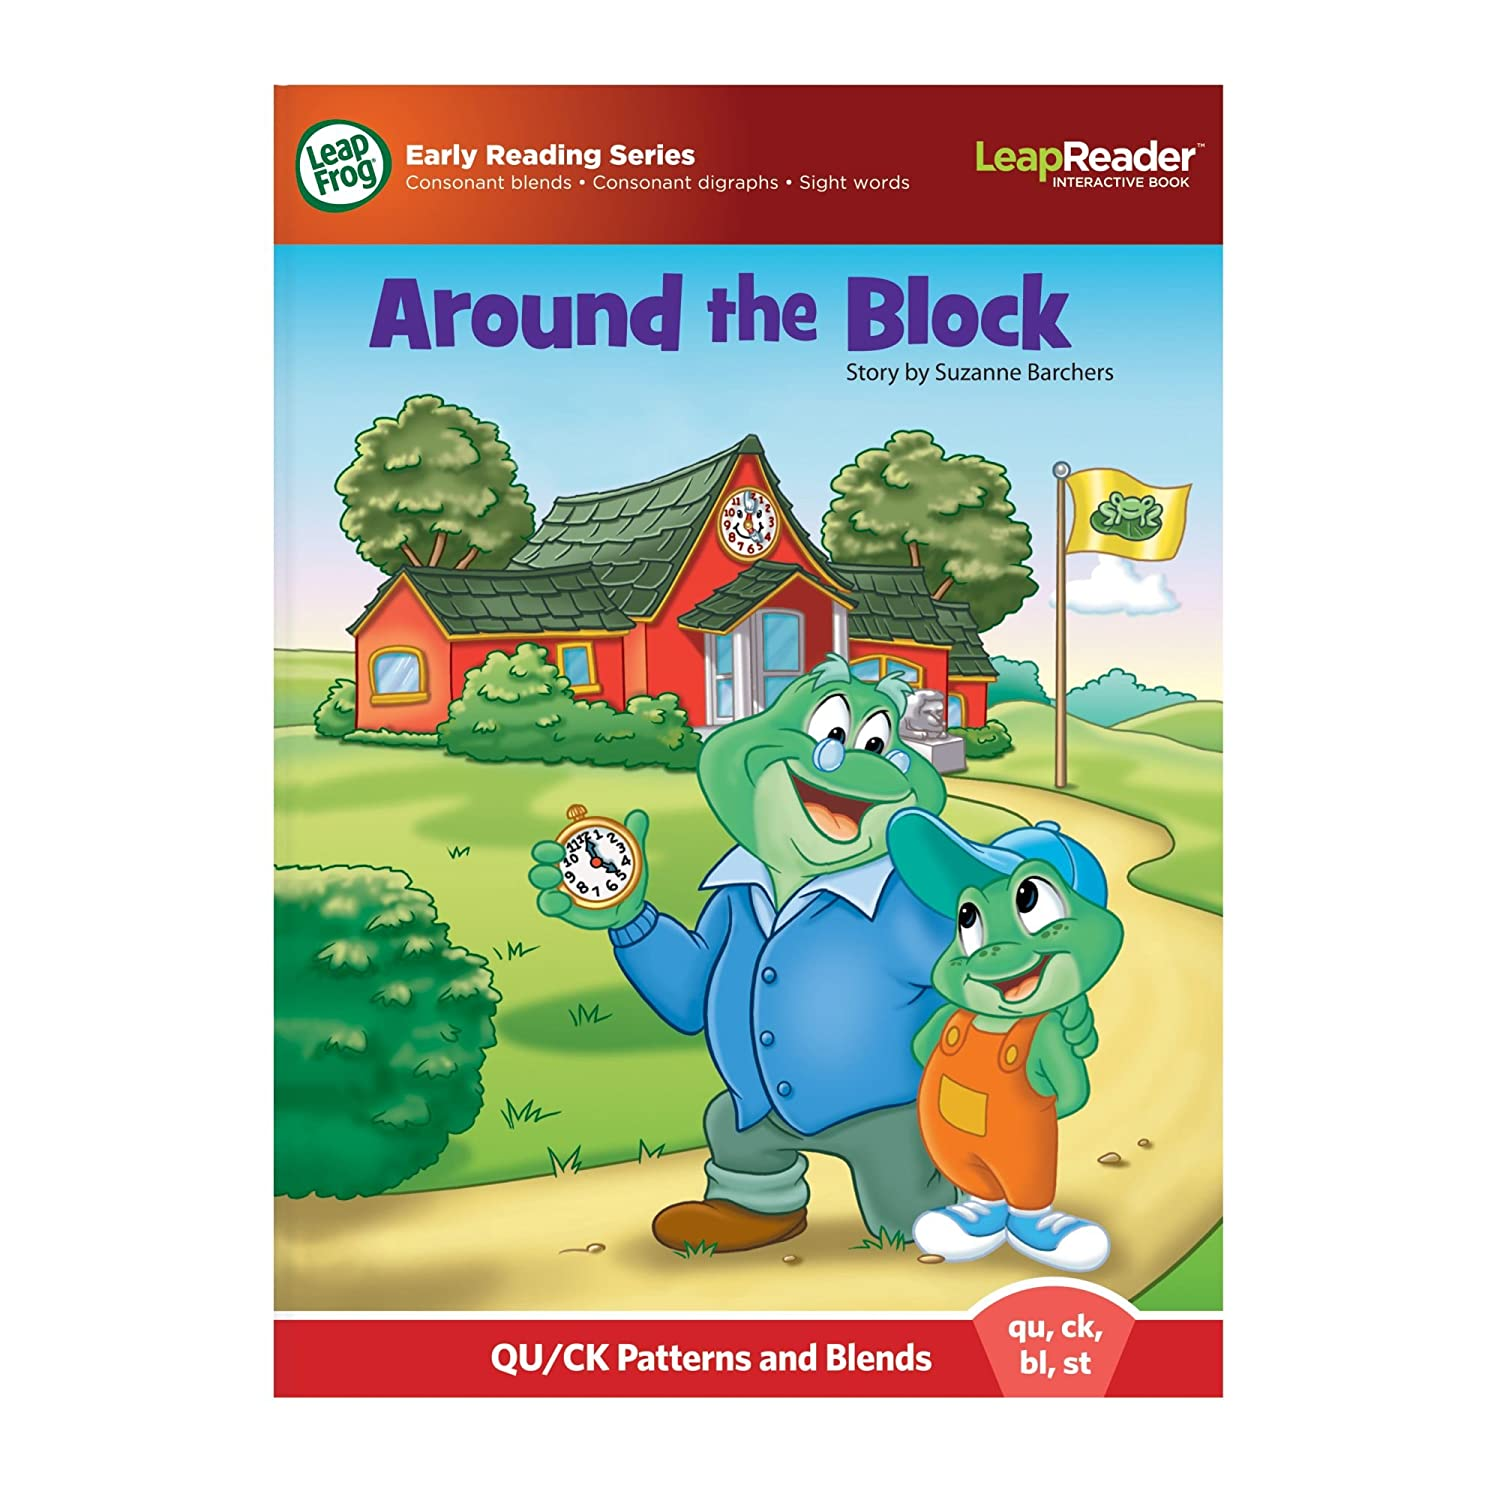 Buy leapfrog leapreader learn to read volume 3 works with tag buy leapfrog leapreader learn to read volume 3 works with tag online at low prices in india amazon gumiabroncs Image collections